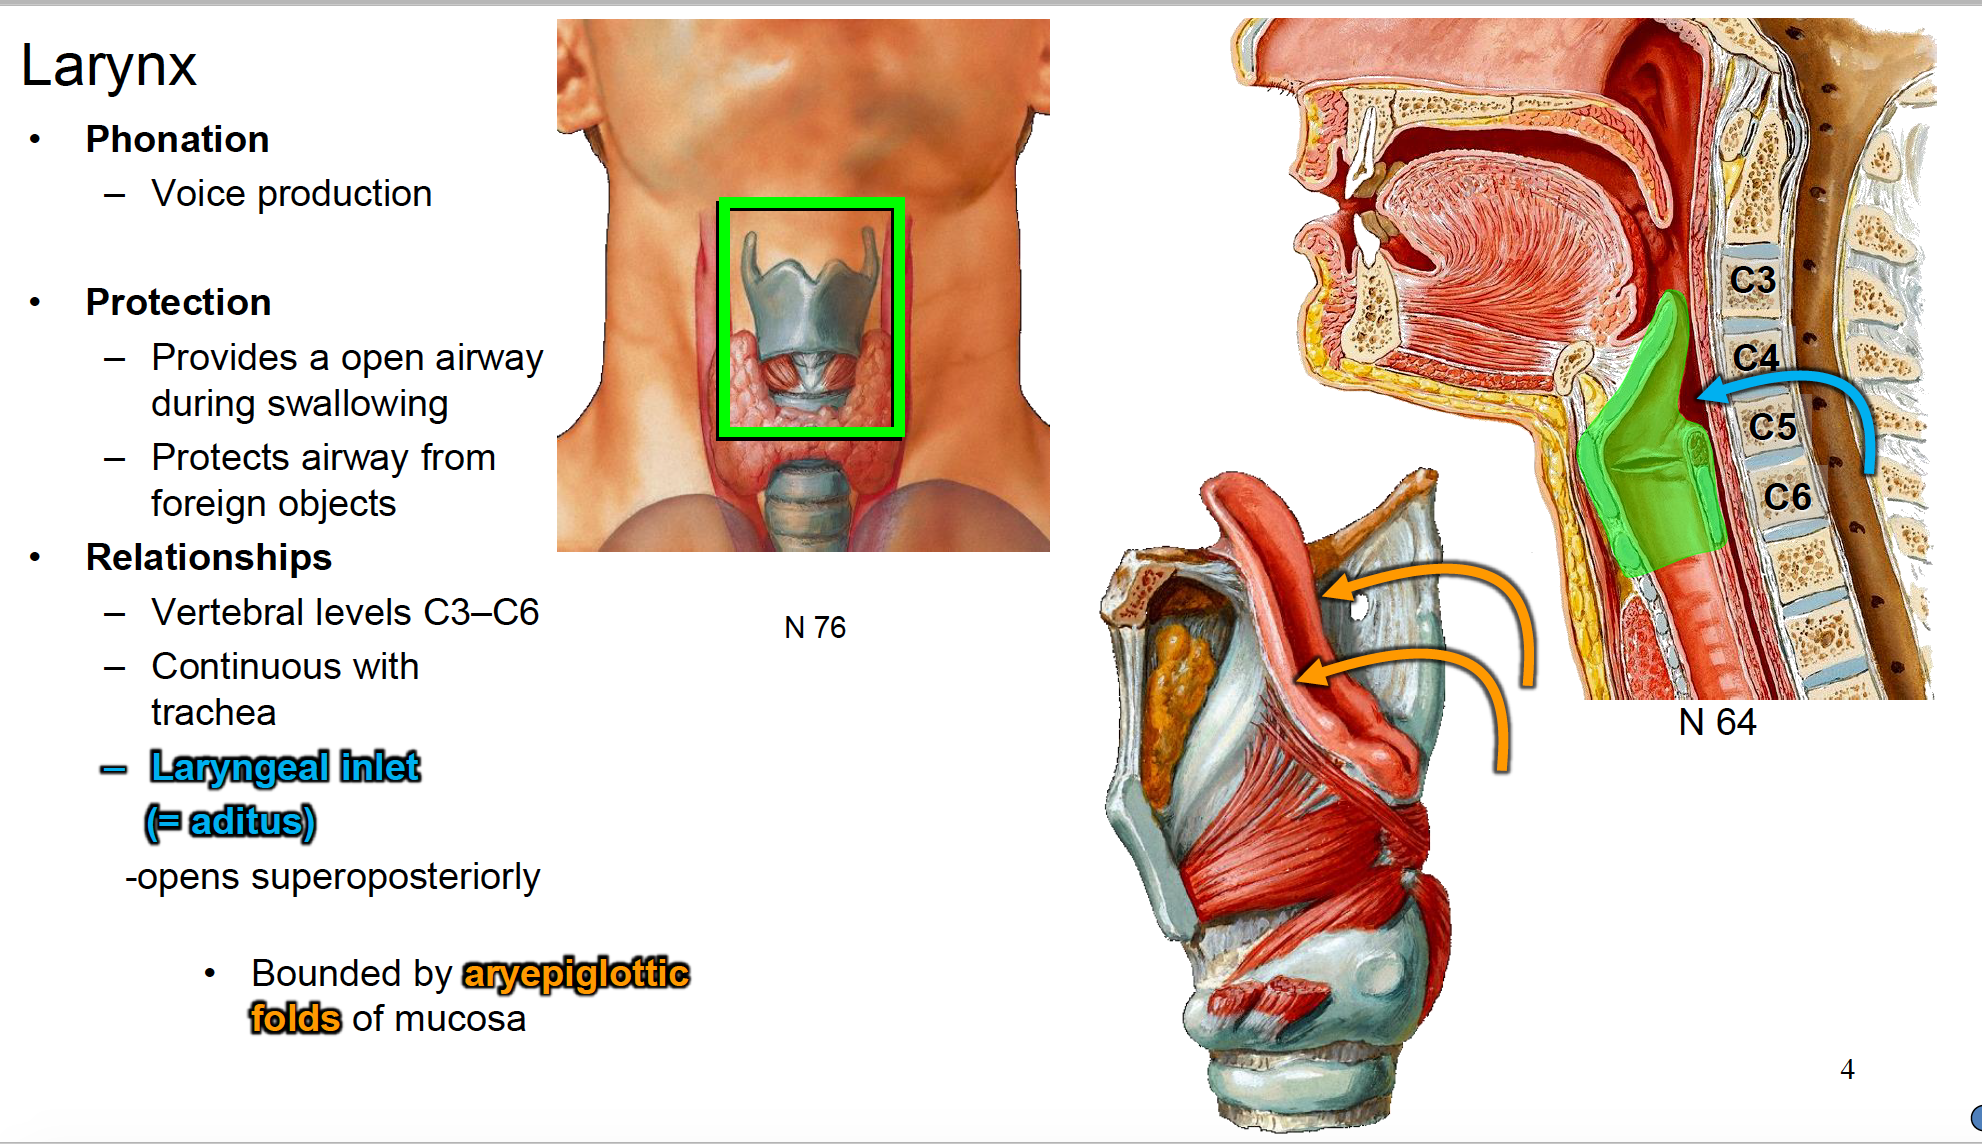 Anatomy G66 Larynx (Anatomy Unit 8) Flashcards | Memorang